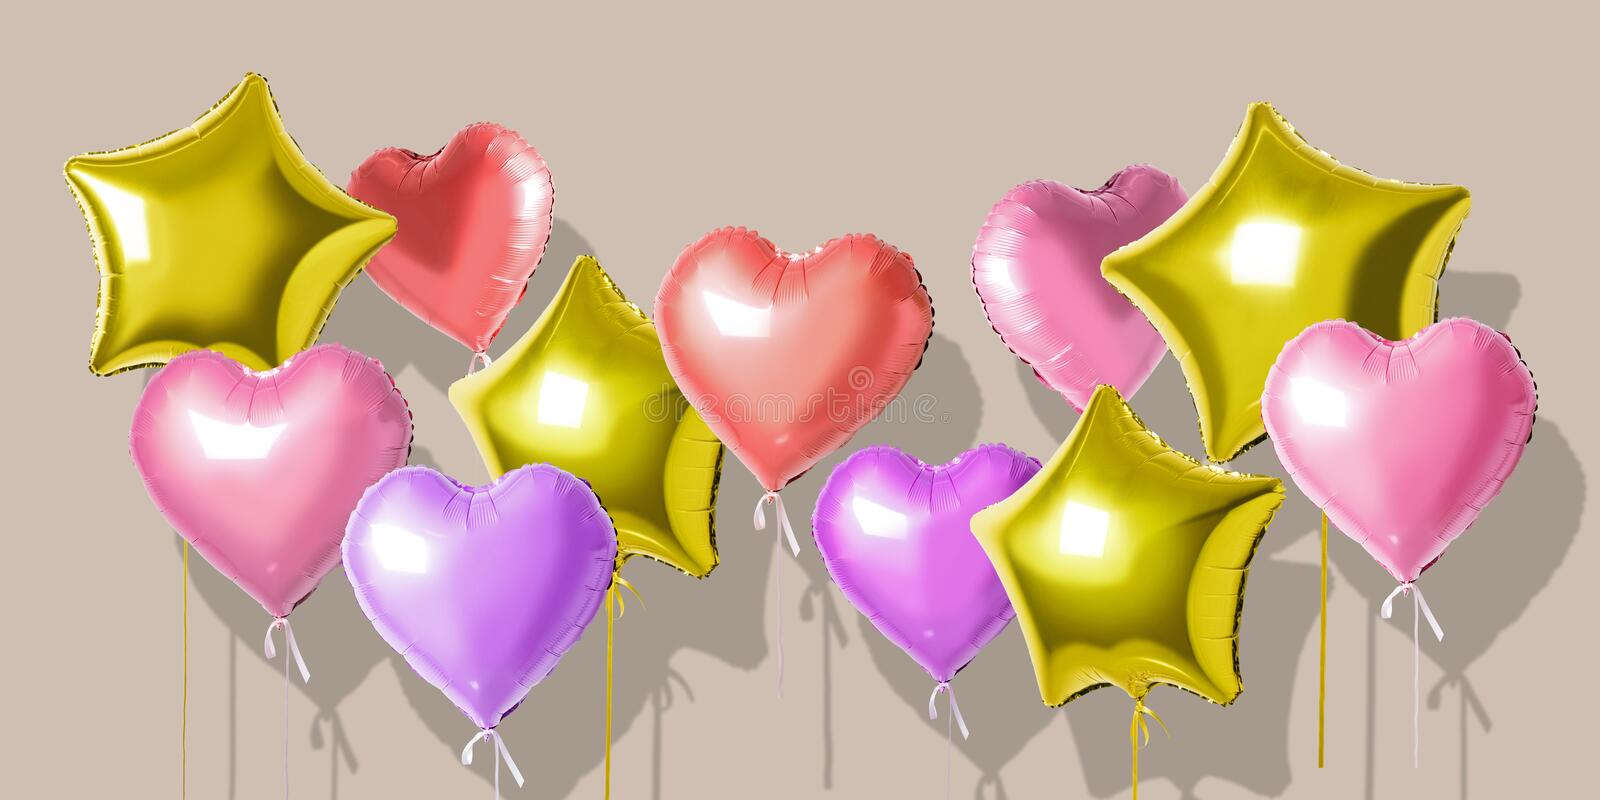 Many colorful helium foil balloons of different shapes over bright background. Minimal holiday concept stock photo